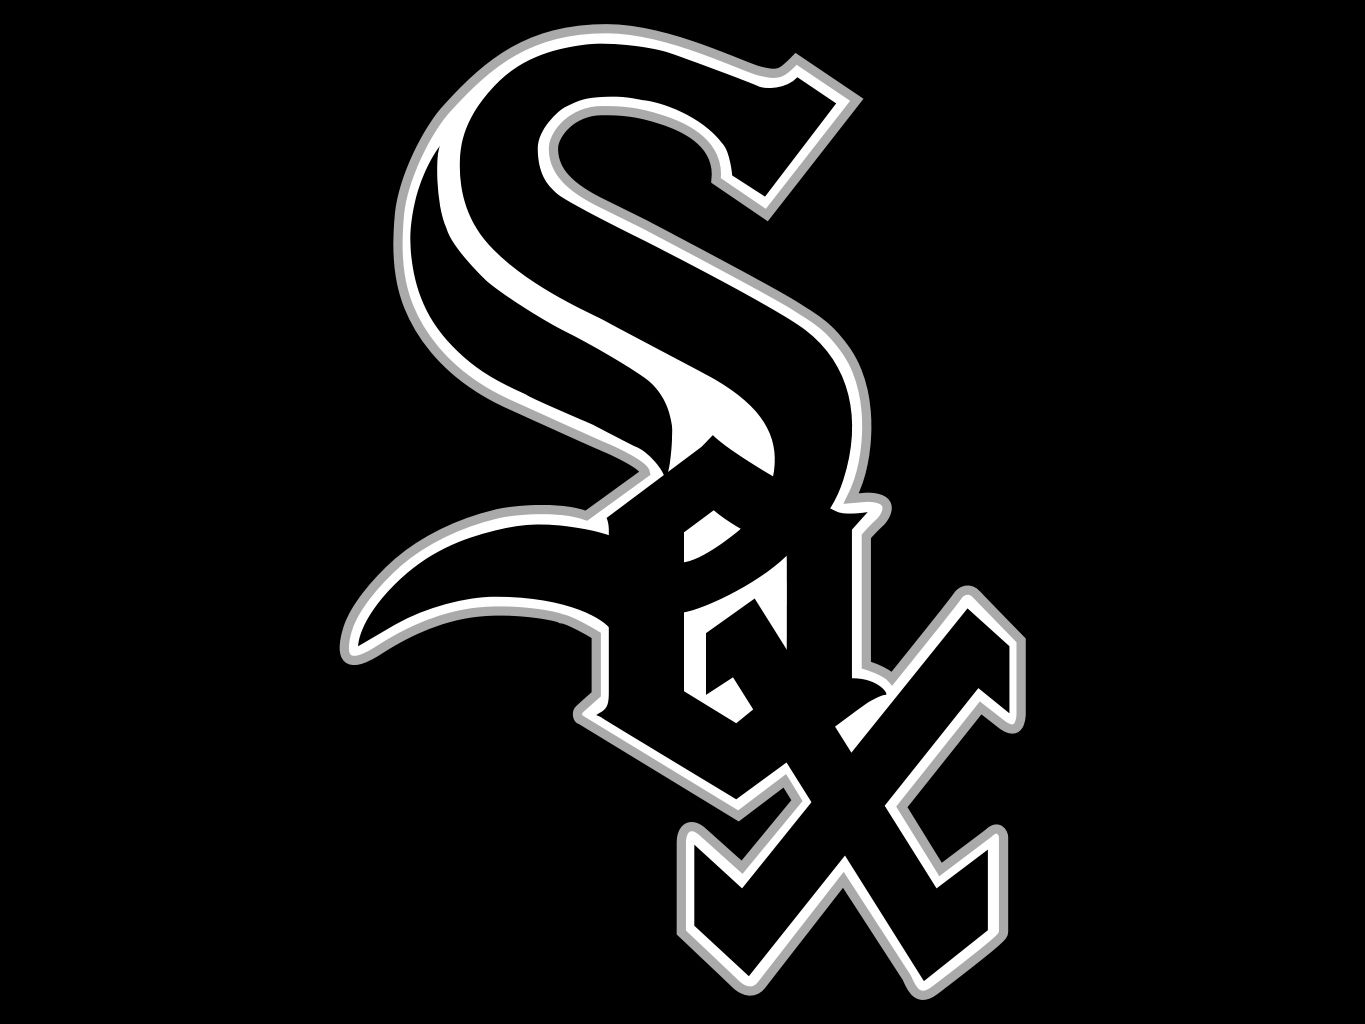 buy, sell or bid for chicago white sox tickets, every ticket has a